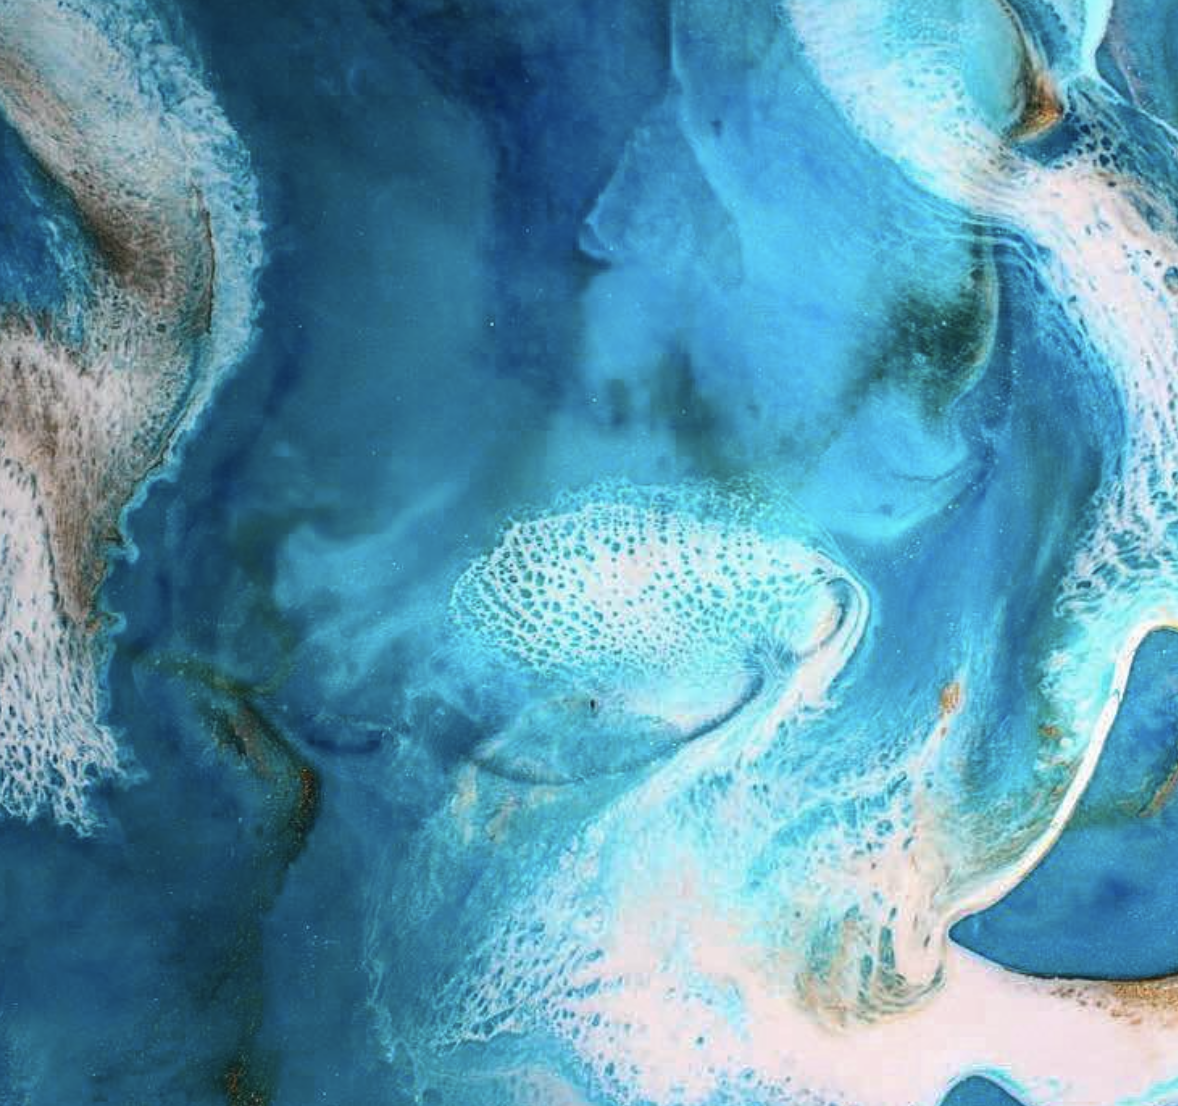 Up close and personal with one of Gina's incredible ocean inspired resin artworks.